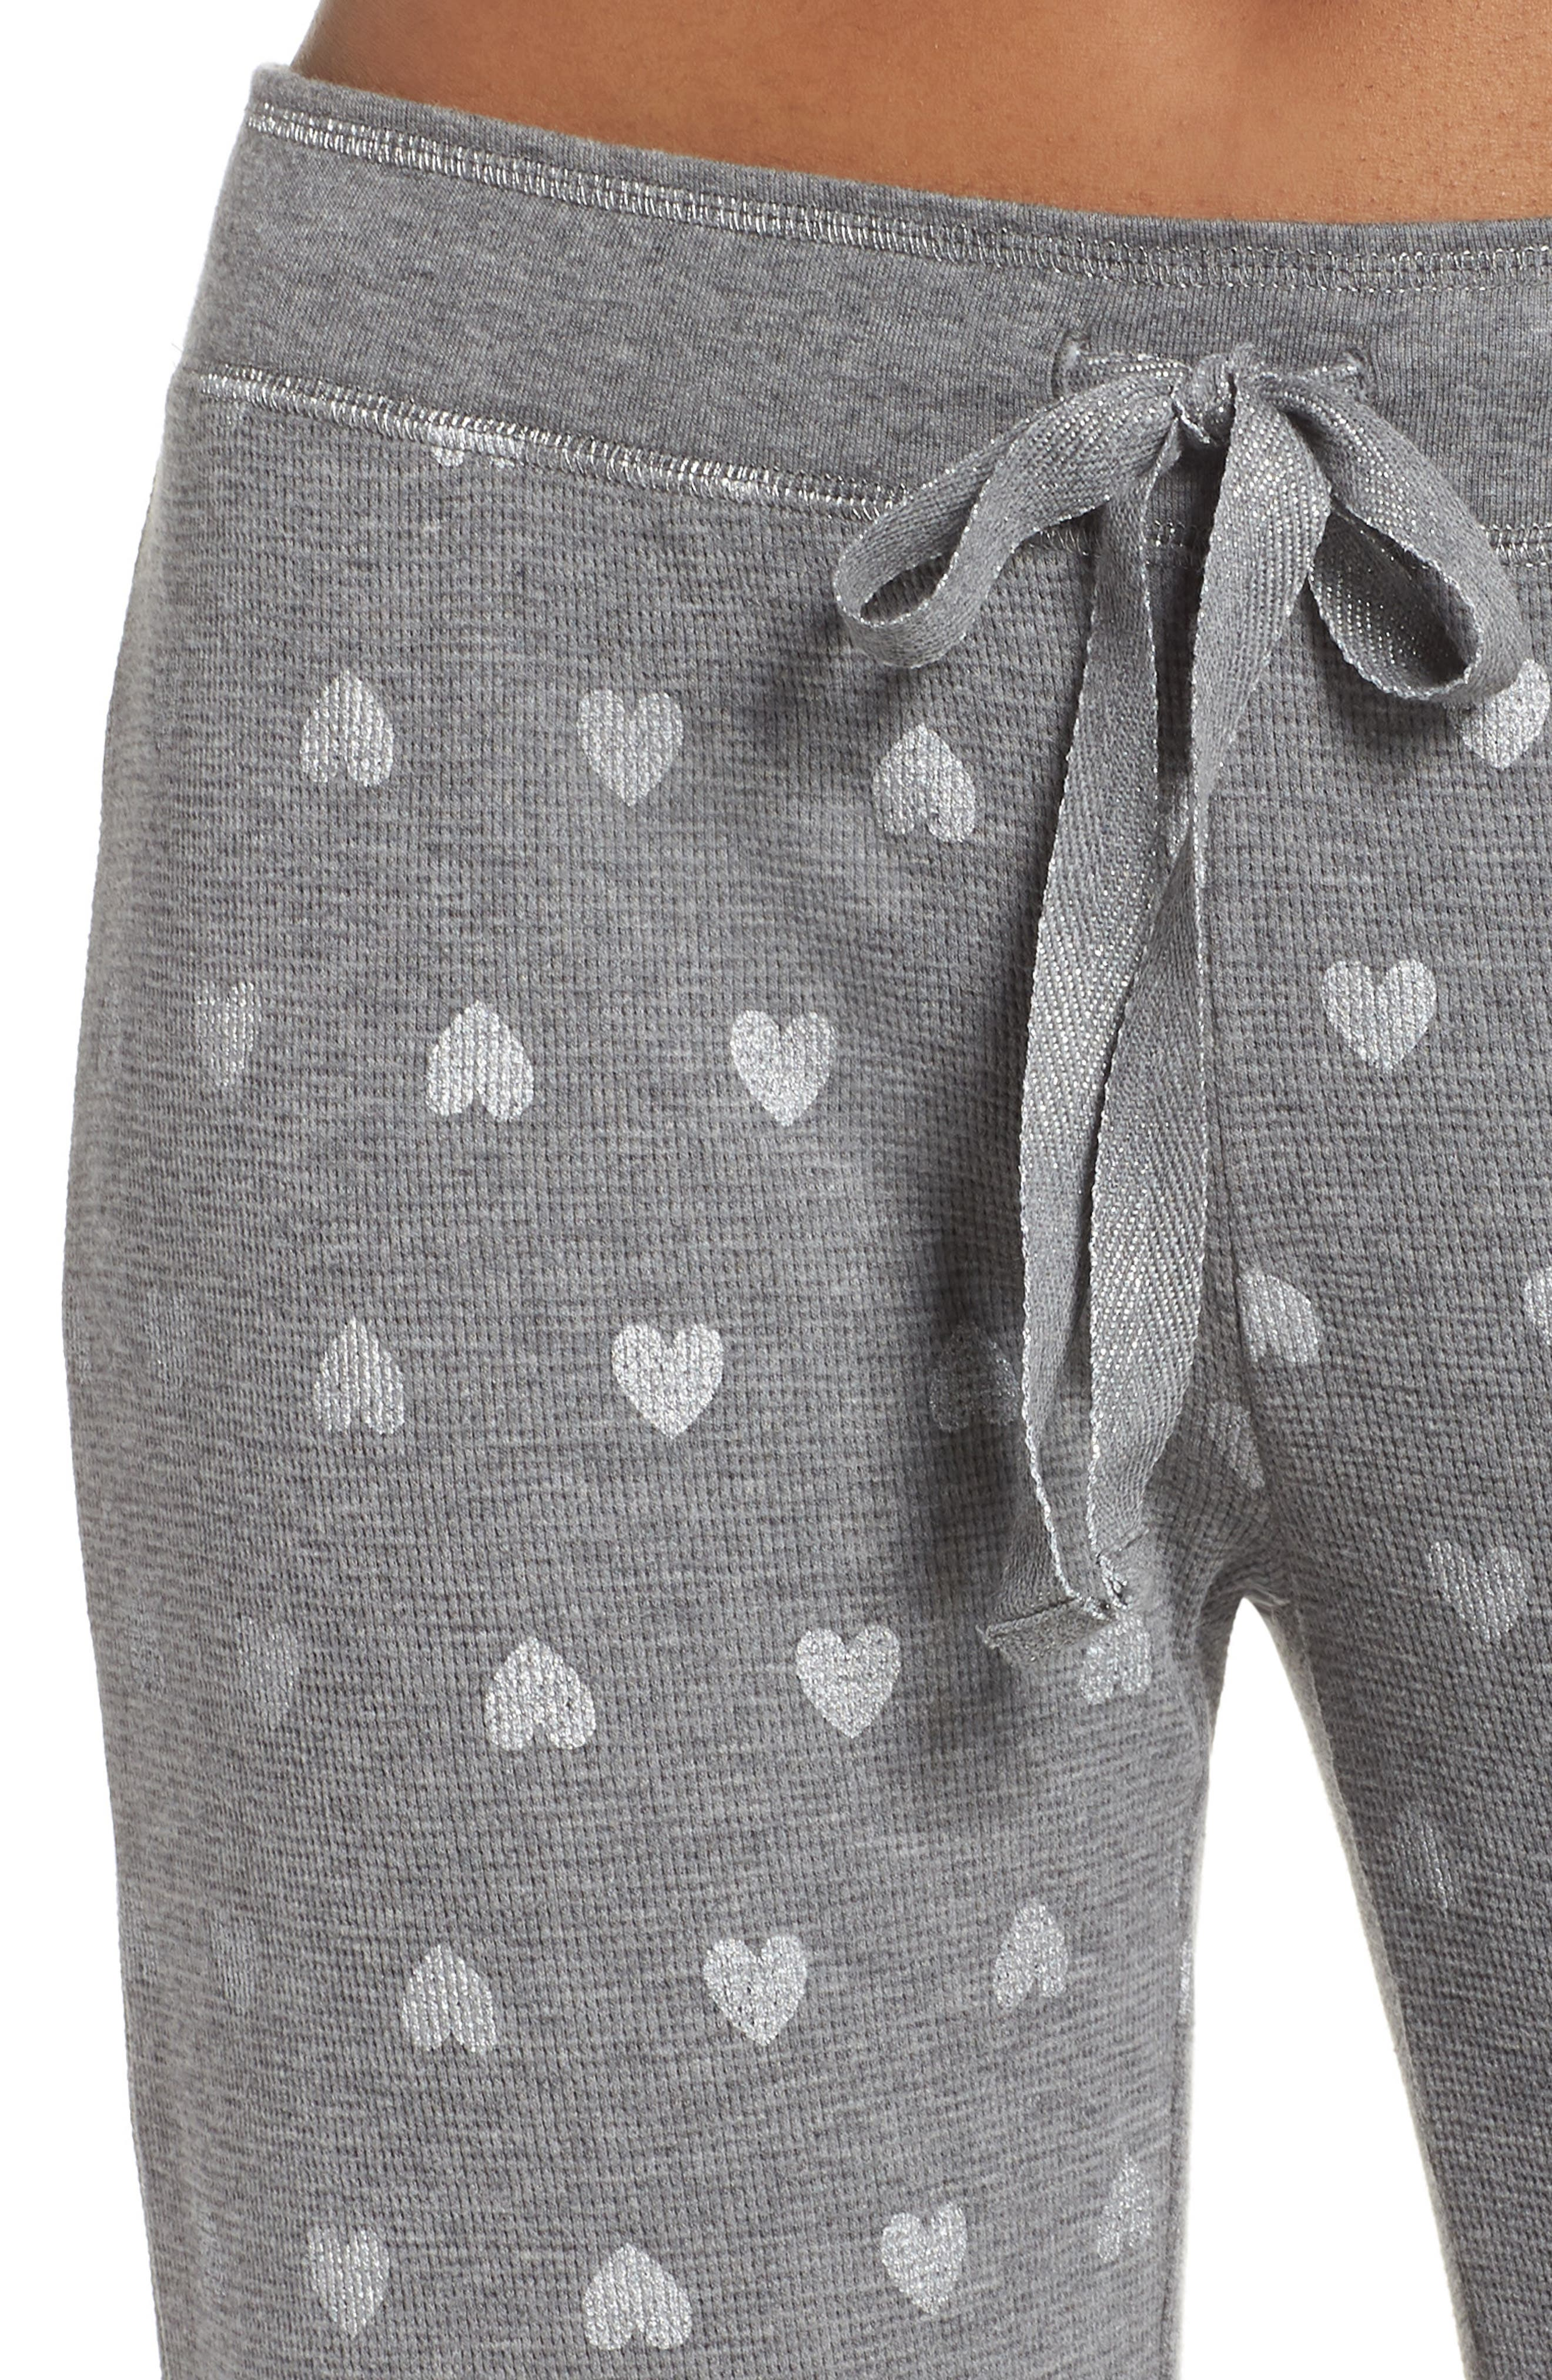 Wild Heart Thermal Lounge Pants,                             Alternate thumbnail 4, color,                             020